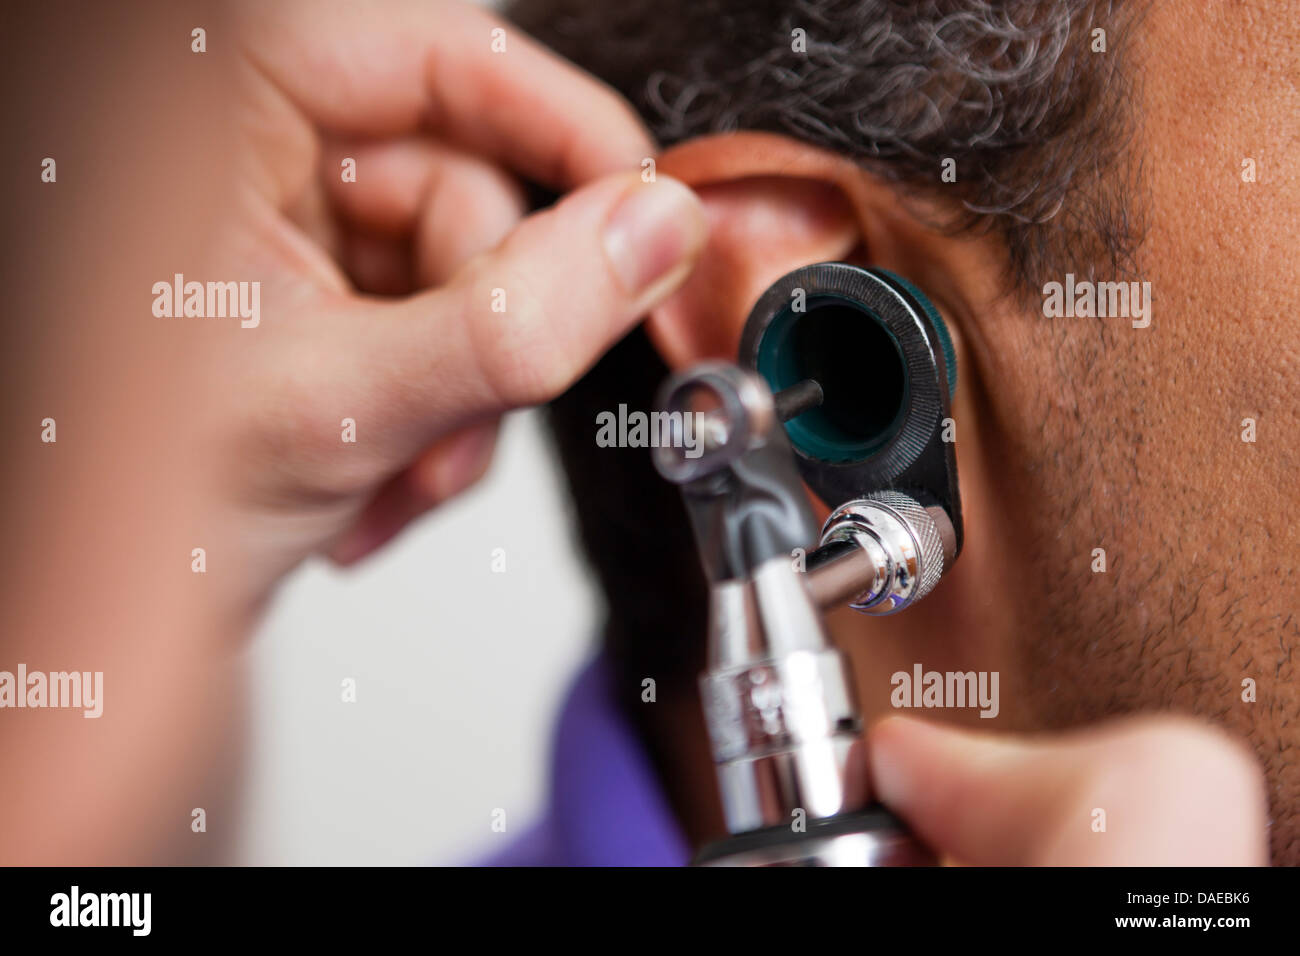 Mid adult doctor using otoscope on patient - Stock Image